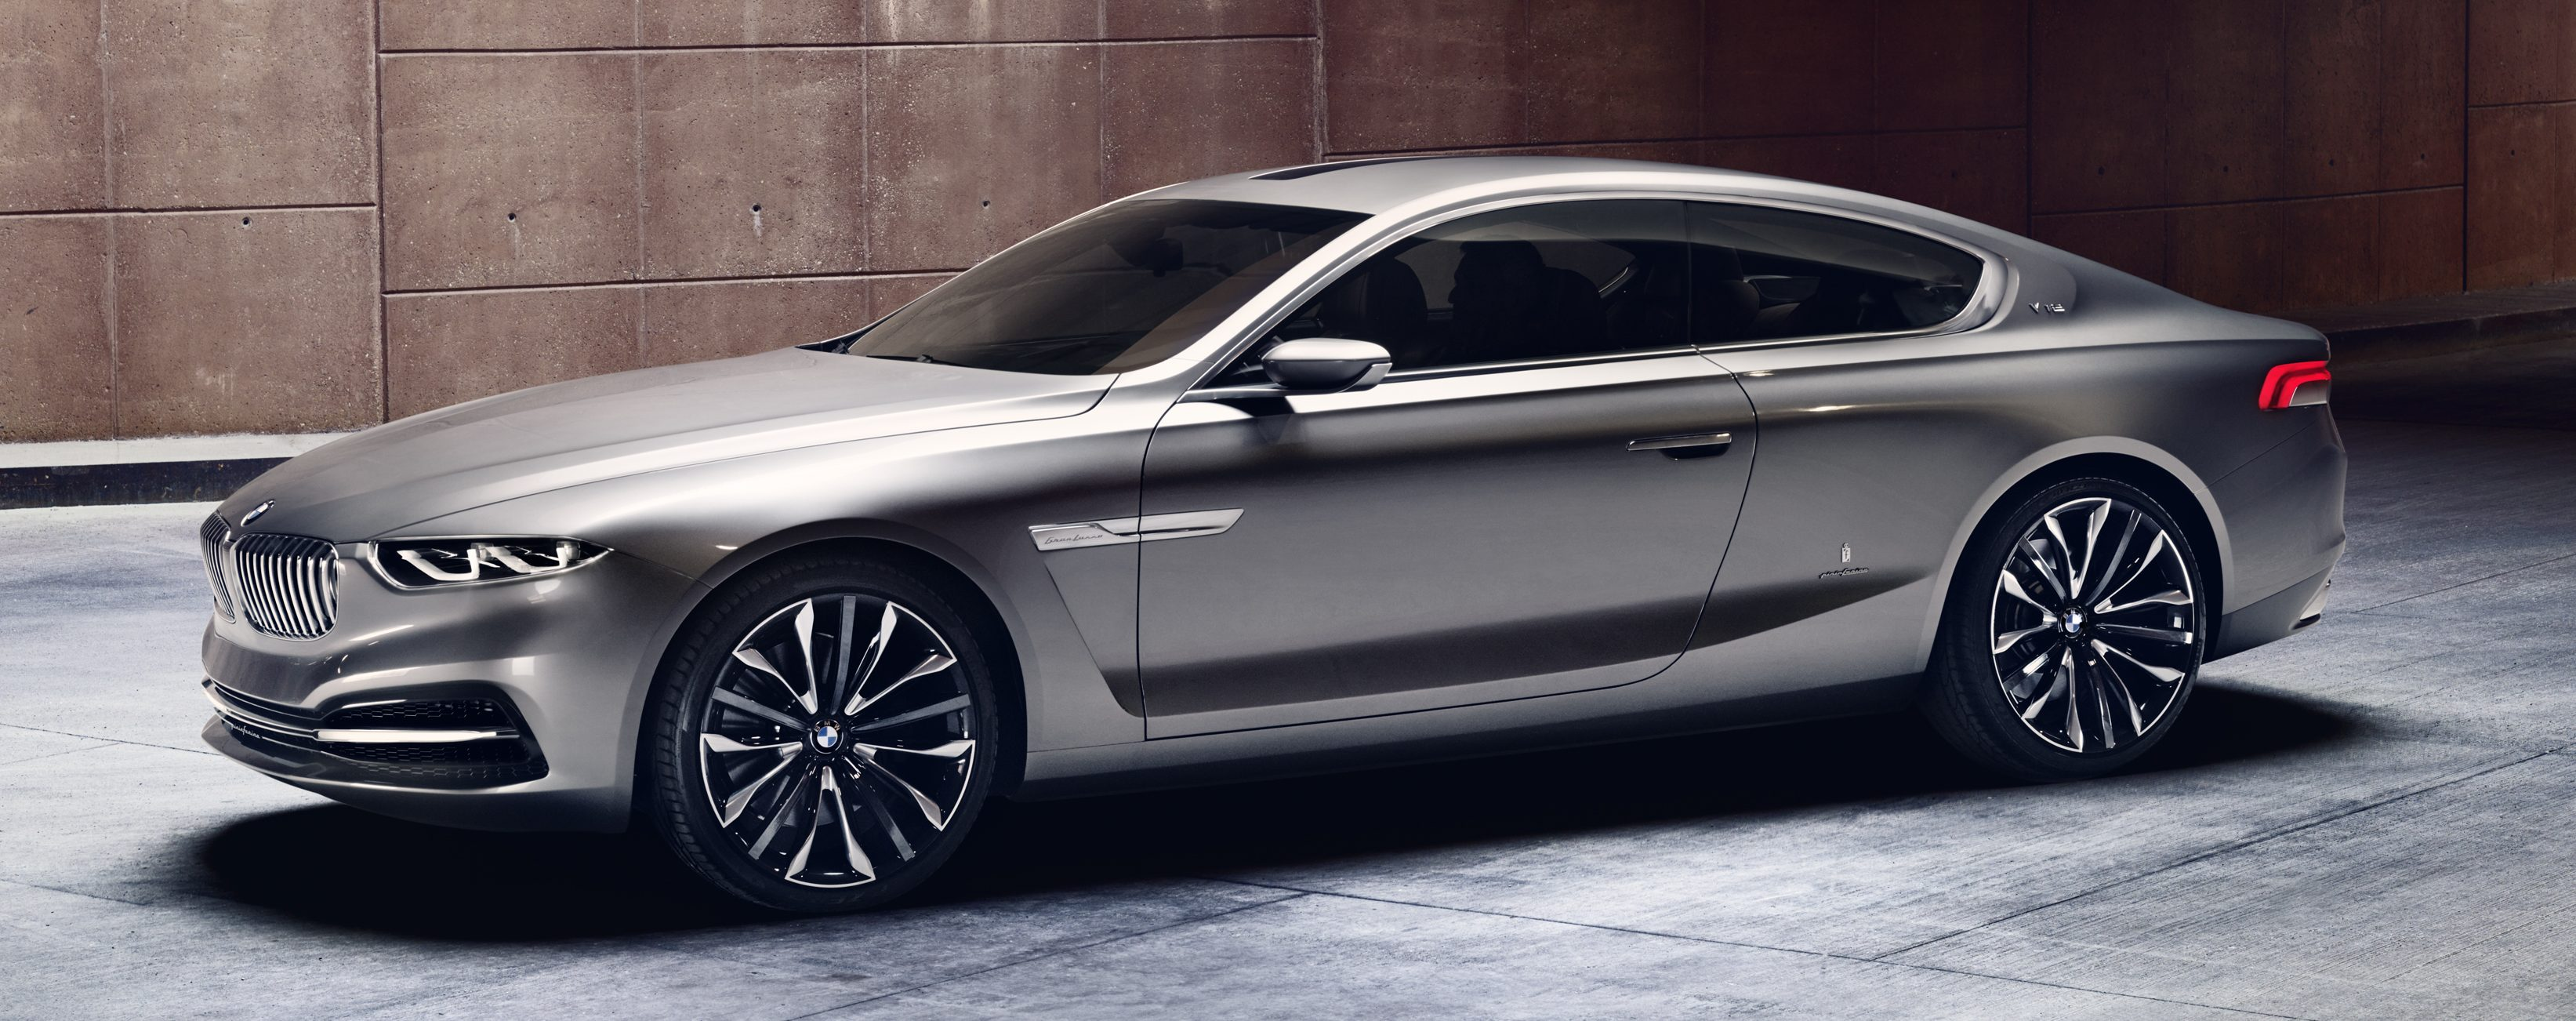 BMW's 8 Series grand tourer set to make a comeback? Image 501638